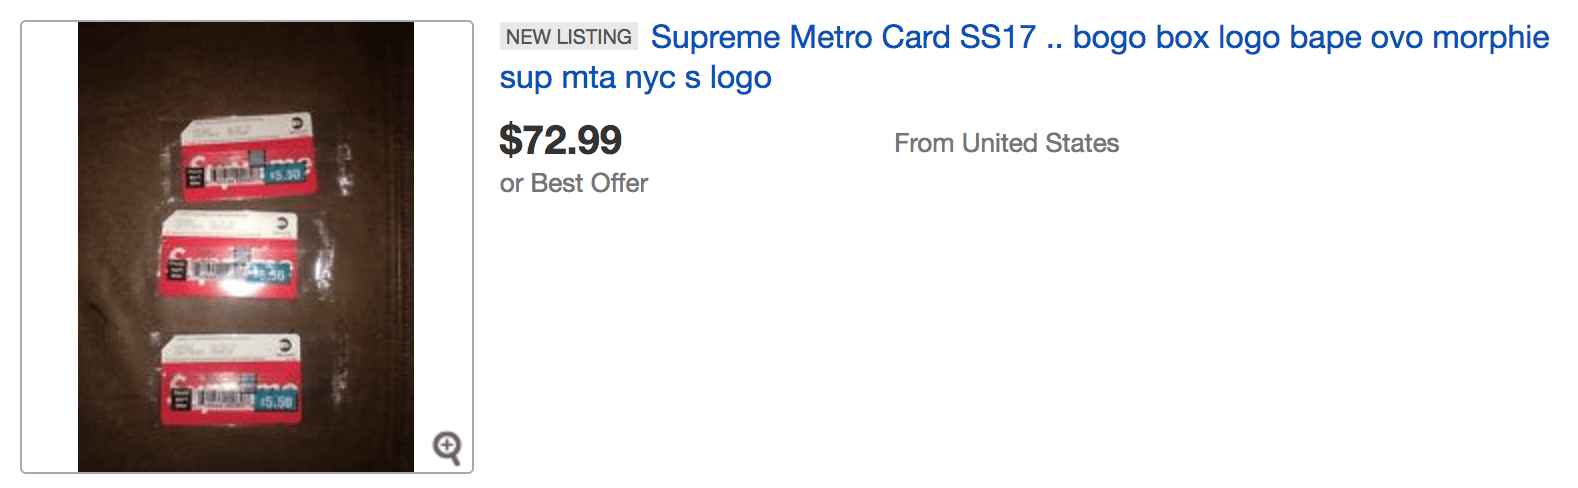 SUPREME NYC Metro Card Now Available on eBay image